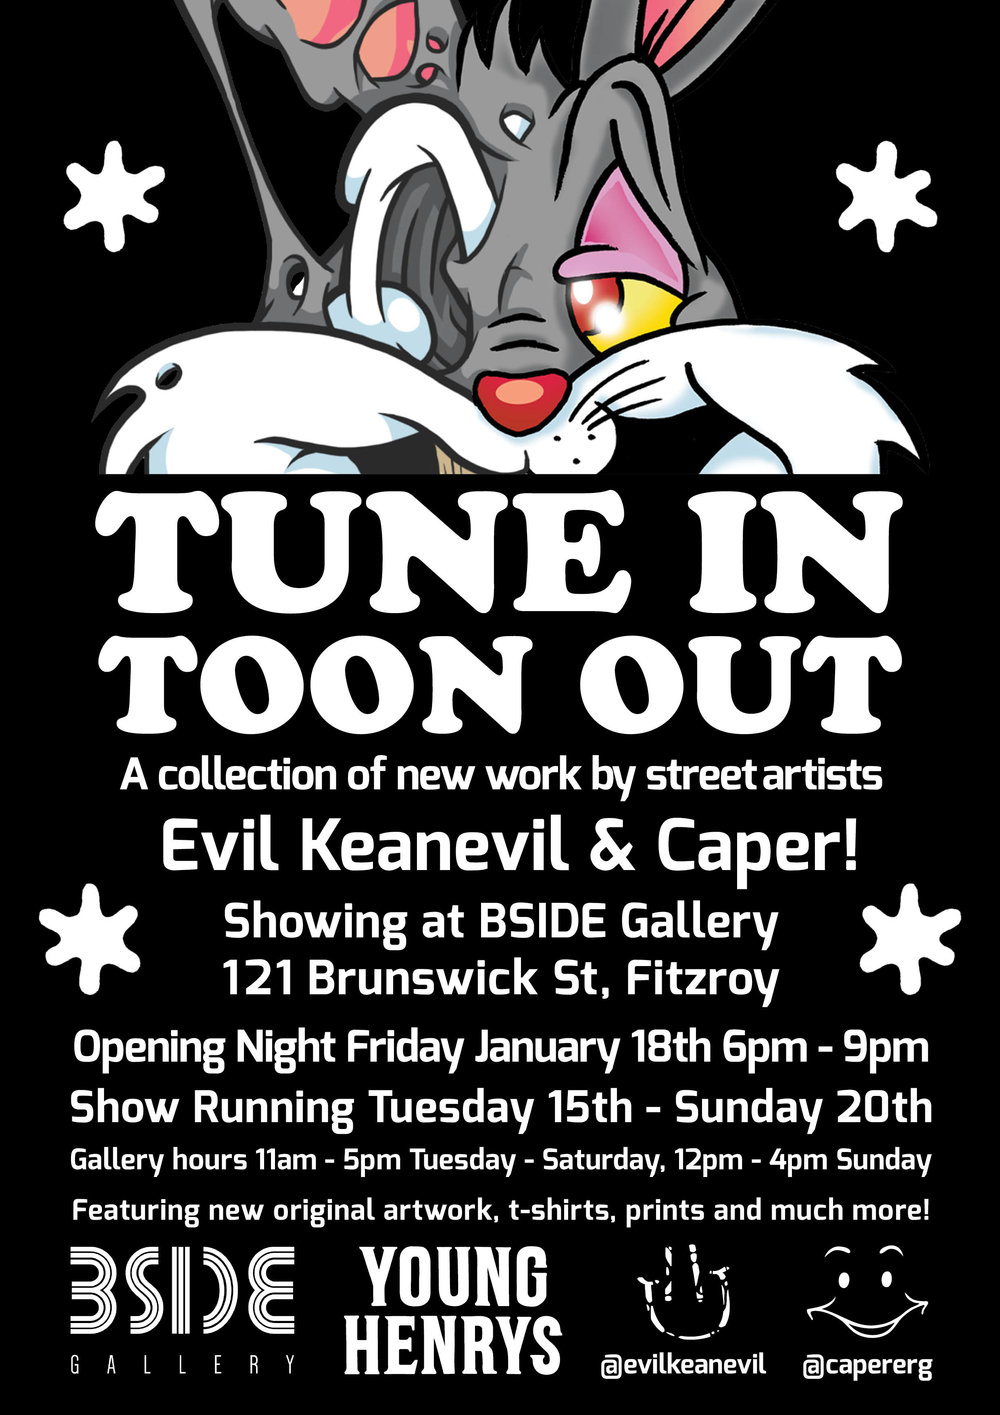 TUNE IN TOON OUTEVIL KEANEVIL X CAPER - Kicking off BSIDE Gallery's 2019 program we have our studio resident and homie Evil Keanevil joining forces with Caper for a collaborative exhibition filled with colour and nostalgia.Take a trip down memory lane and see iconic cartoon characters recreated in the contemporary styles that both artists have honed over the years, from acrylic paintings and stencils, to intricate woodcuts. Join us for the opening of Tune In Toon Out from 6-9pm this Friday 18th January, proudly supported by Young Henrys!The exhibition runs from Tuesday 15th - Sunday 20th January 2019, for all enquiries please contact the Gallery Manager Ariana - info@bsidegallery.comExhibition hours:Tuesday 11am - 5pmWednesday 11am - 5pmThursday 11am - 5pmFriday 11am - 9pmSaturday 11am - 5pmSunday 12pm - 4pmCaperCaper has been an active street artist for over 12 years, creating illustrations and paintings that parody mass media and popular culture. His use of multi-layered imagery in his works at times appear idiosyncratic and quirky, whilst acting as typical by-products of American superabundance and marketing. Caper's works are saturated with mental inertia, cliches and bad jokes, and by their nature question the coerciveness of the superficial. Evil KeanevilEvil Keanevil's work is a dynamic and bold exploration of entropy and deconstruction of reality. Pop culture icons, as well as original characters are deconstructed to reveal their core components, usually by liquefying or melting the subject. Questions and themes have risen through the meltingly matter, bubbling through the muck and surfacing in the paintings themselves - which components can be stripped away, and by what measure before the subject becomes unrecognisable? When the subject is melted down, is it their perception of reality being manipulated, or the viewer's?